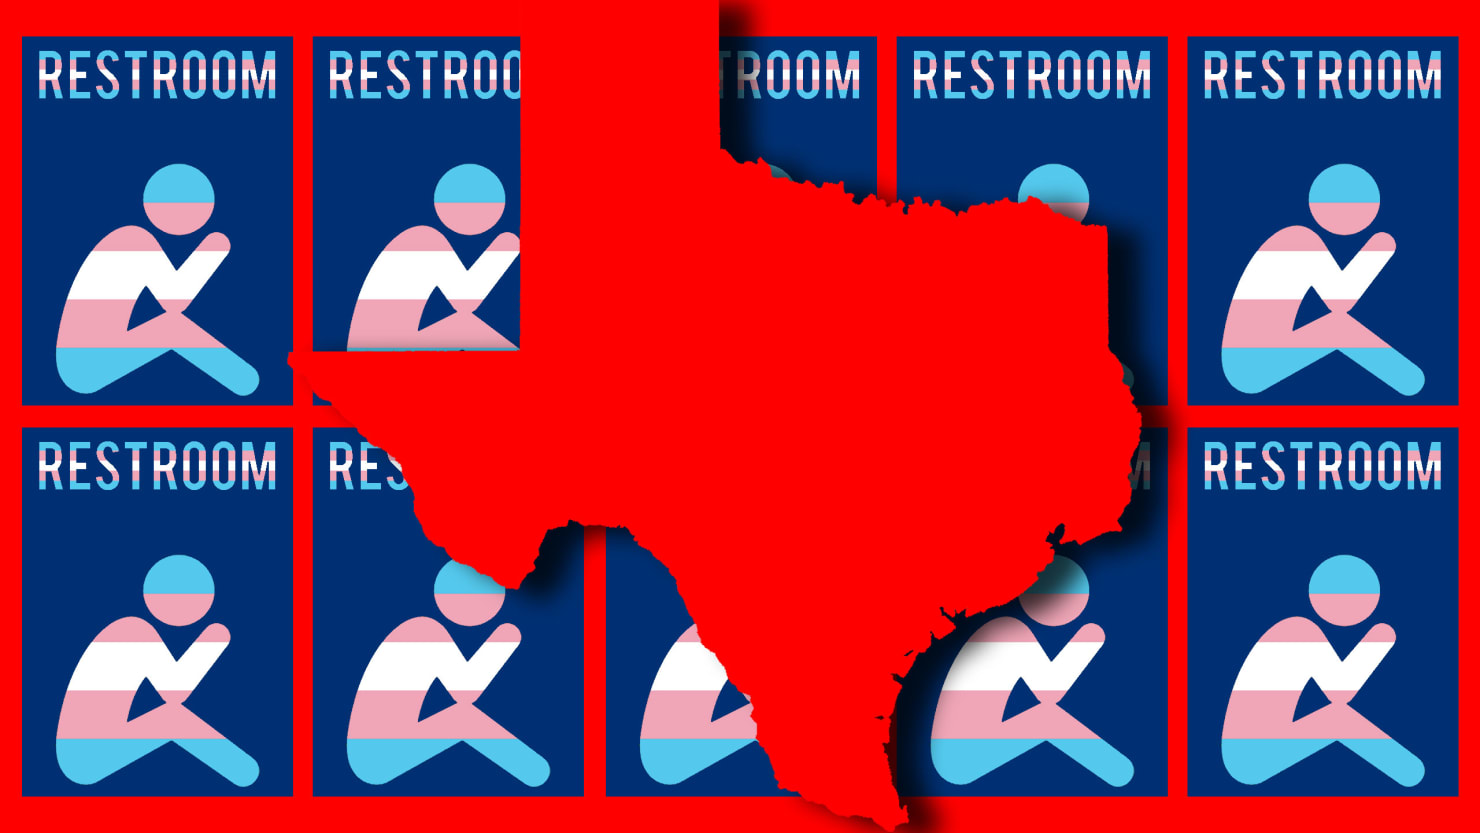 Calls For Special Session To Pass Anti-Trans 'Bathroom Bill'